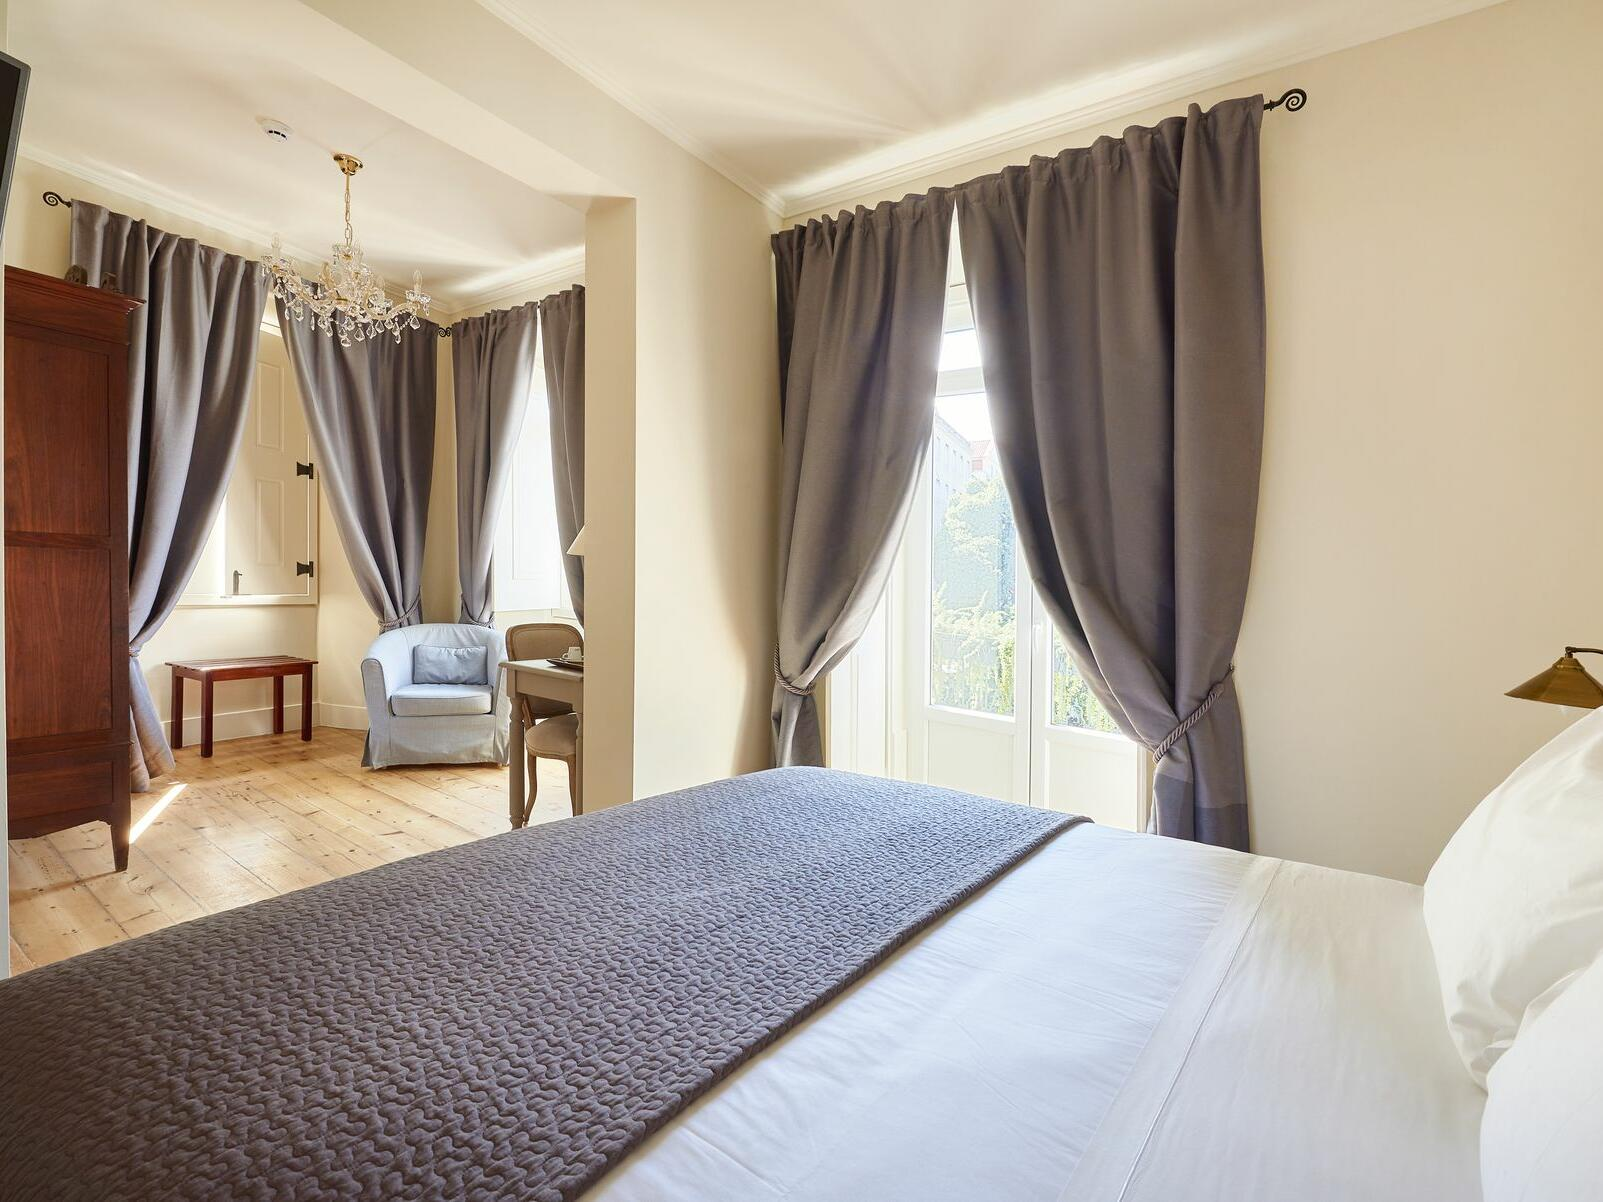 Hotel Alegria room with bed, and accent chairs near window